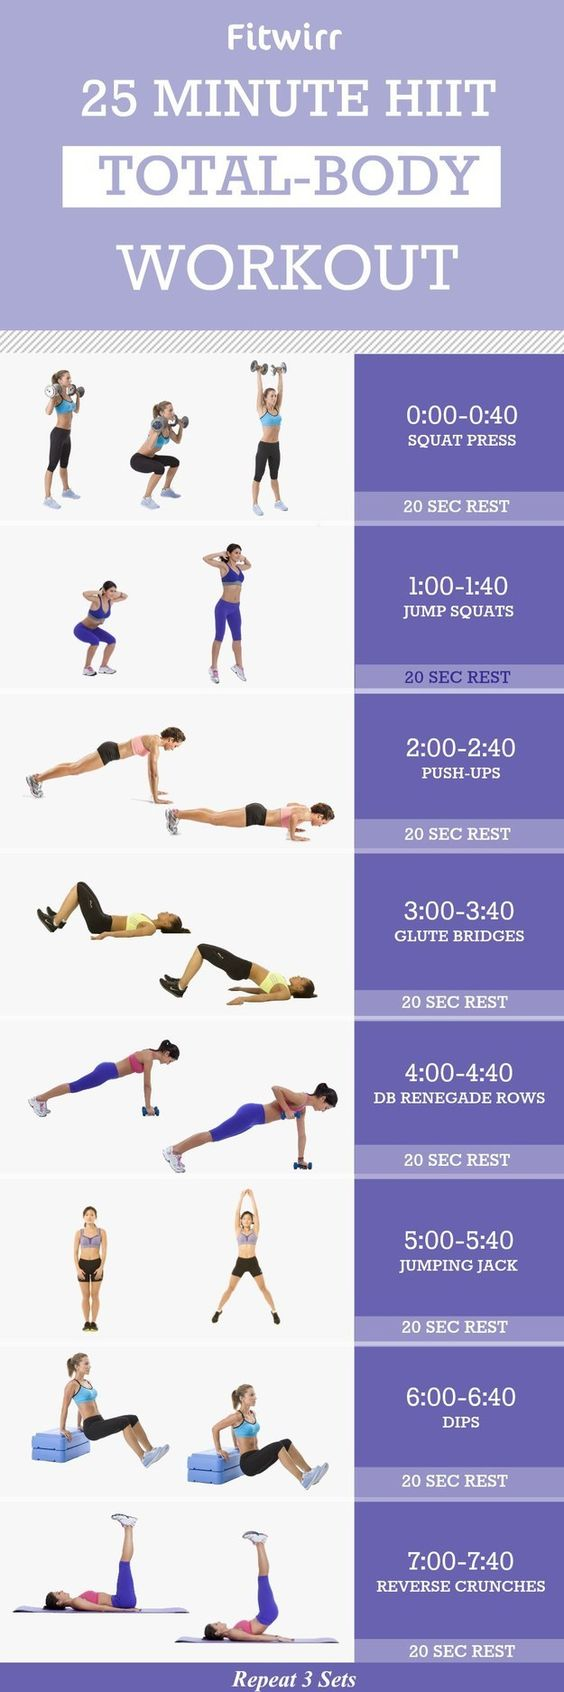 How to get a heart-pumping HIIT workout:   19 Cheat Sheets For Every Kind Of Workout